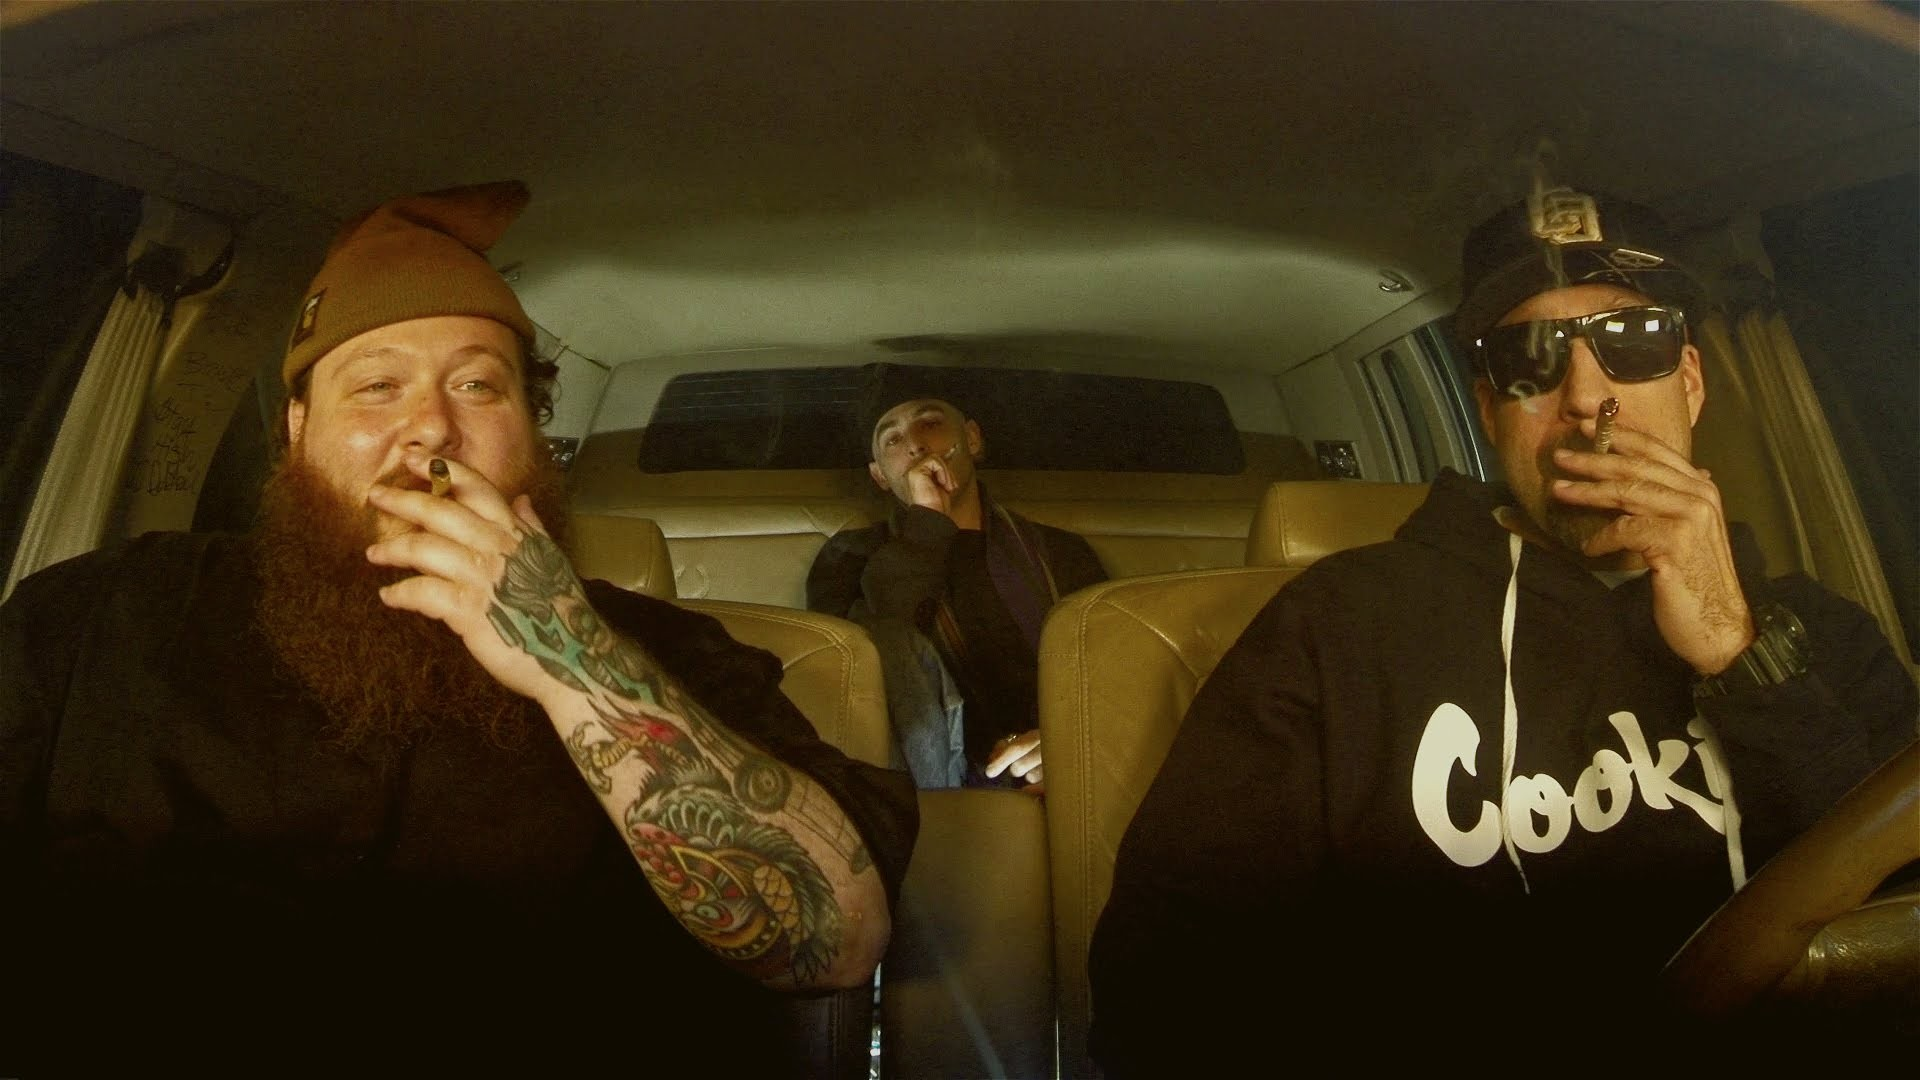 action bronson and the alchemist give praise on brother jedidiah returning from what were presumably the culinary version of vision quests rap jester action bronson has given us a yet another slice of dusted samples and